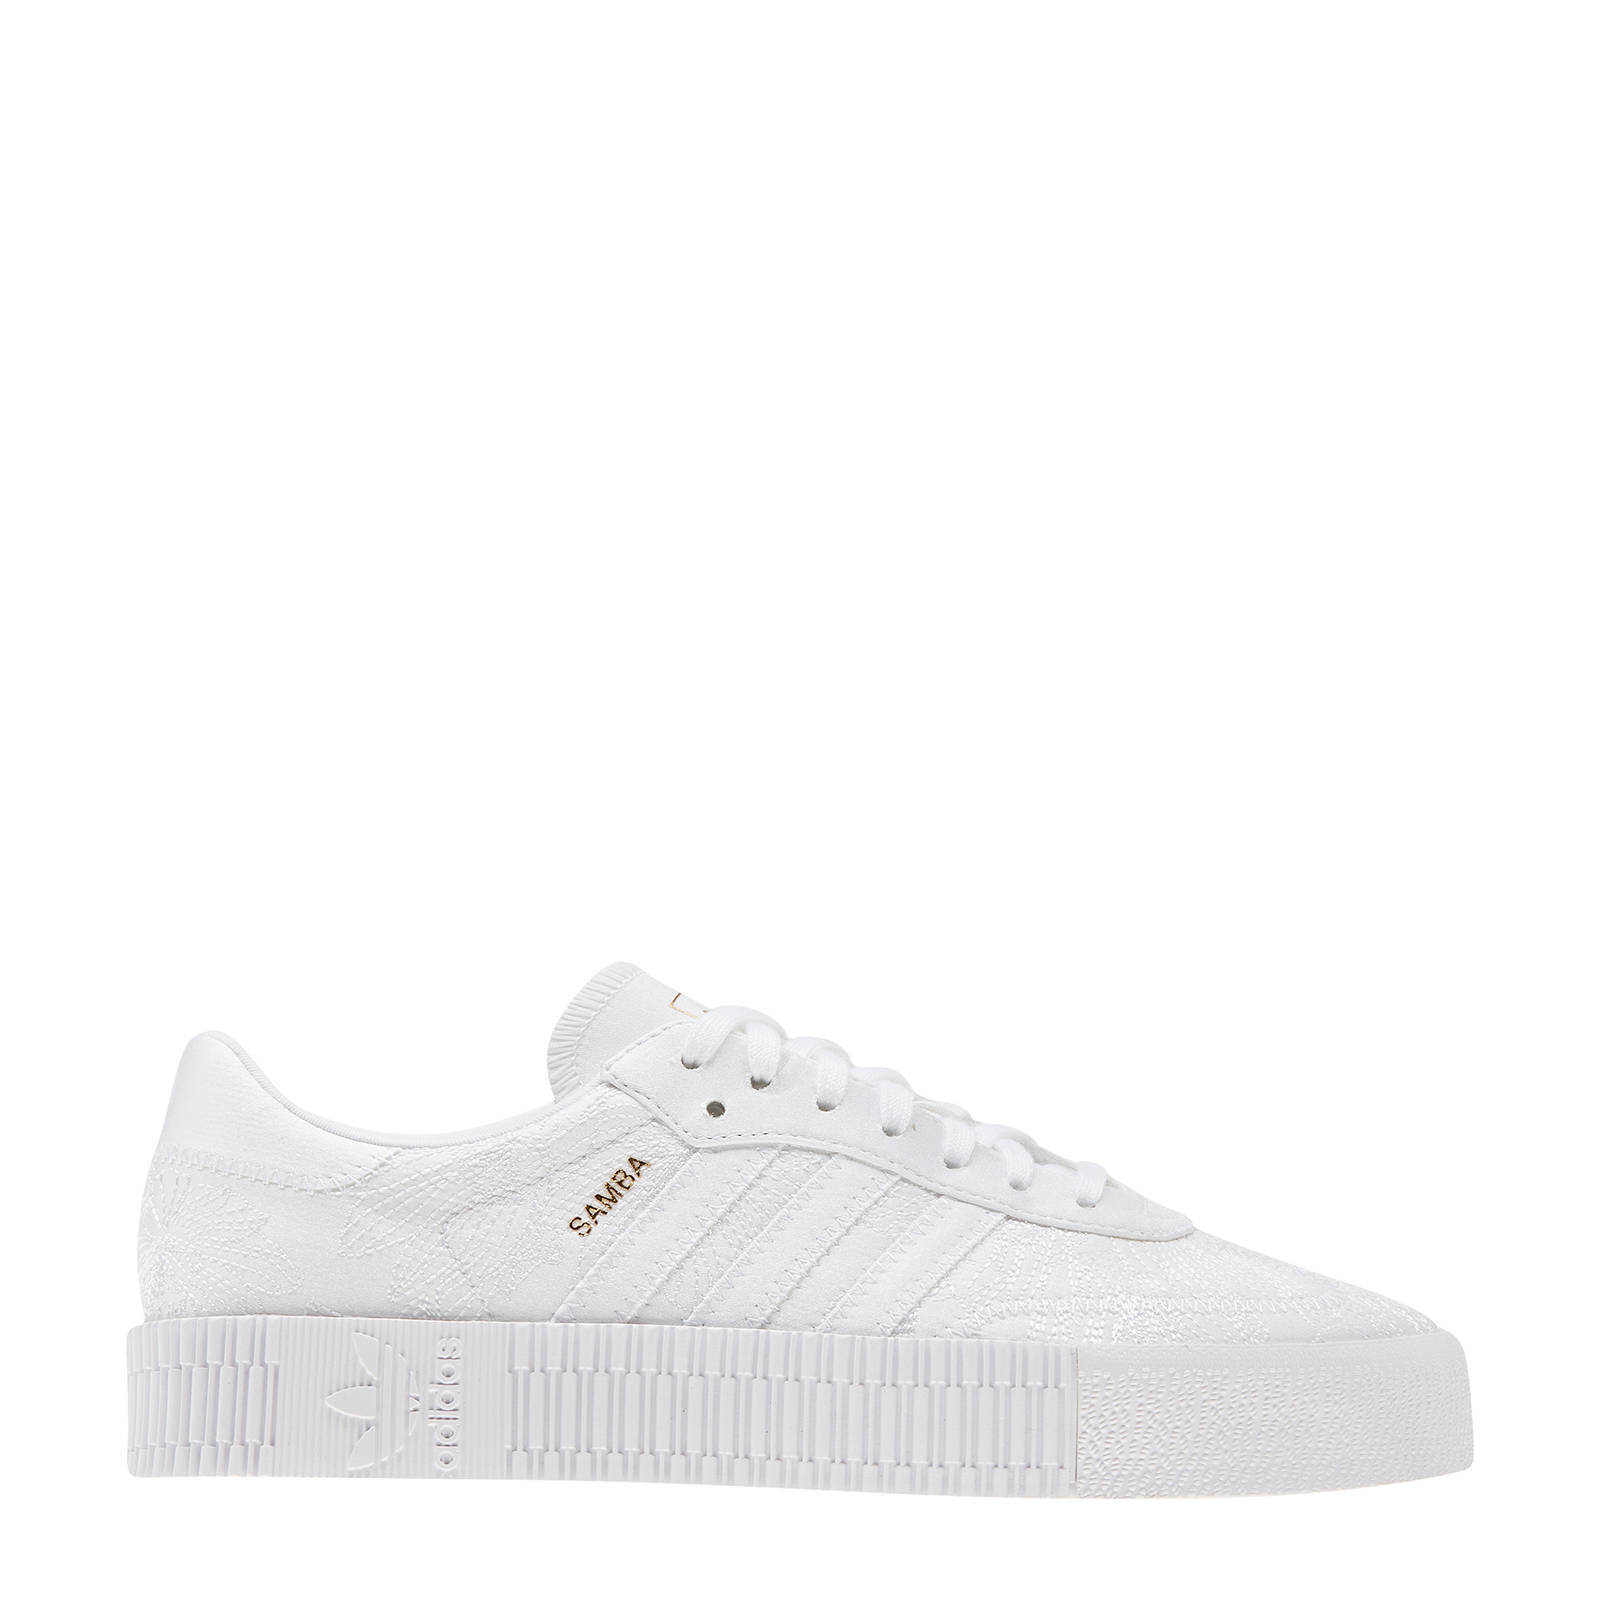 adidas Originals Sambarose W sneakers wit | wehkamp